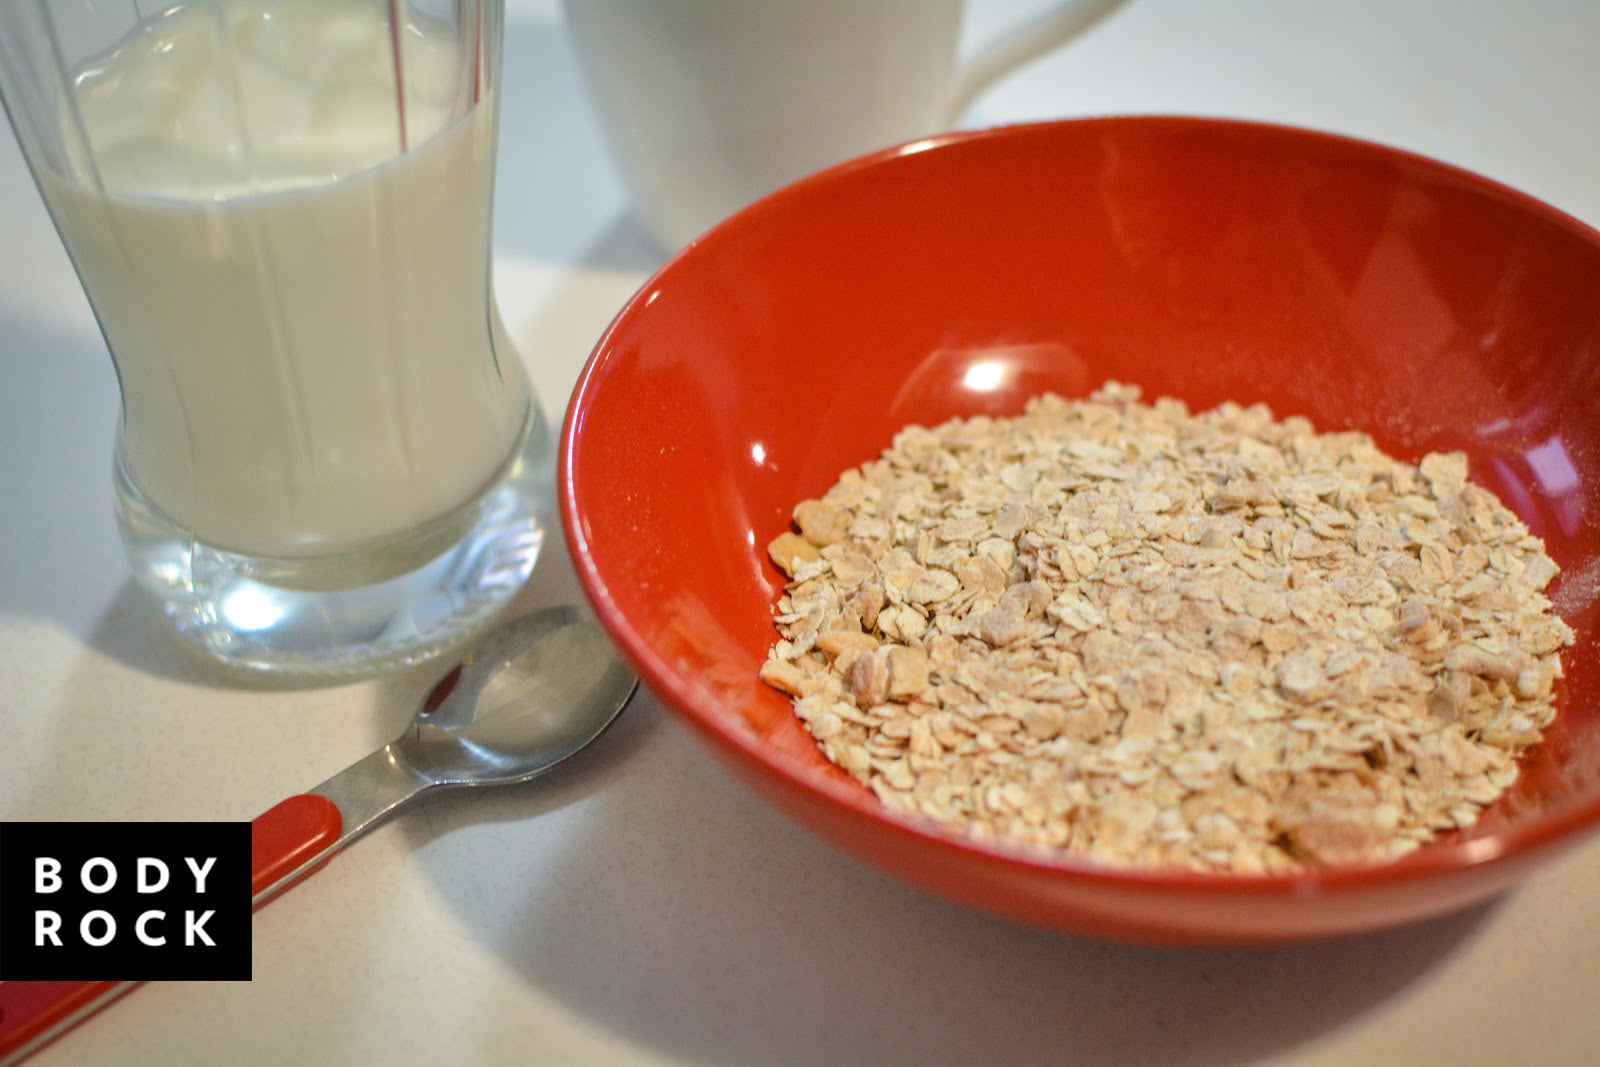 Should You Switch To Oat Milk?